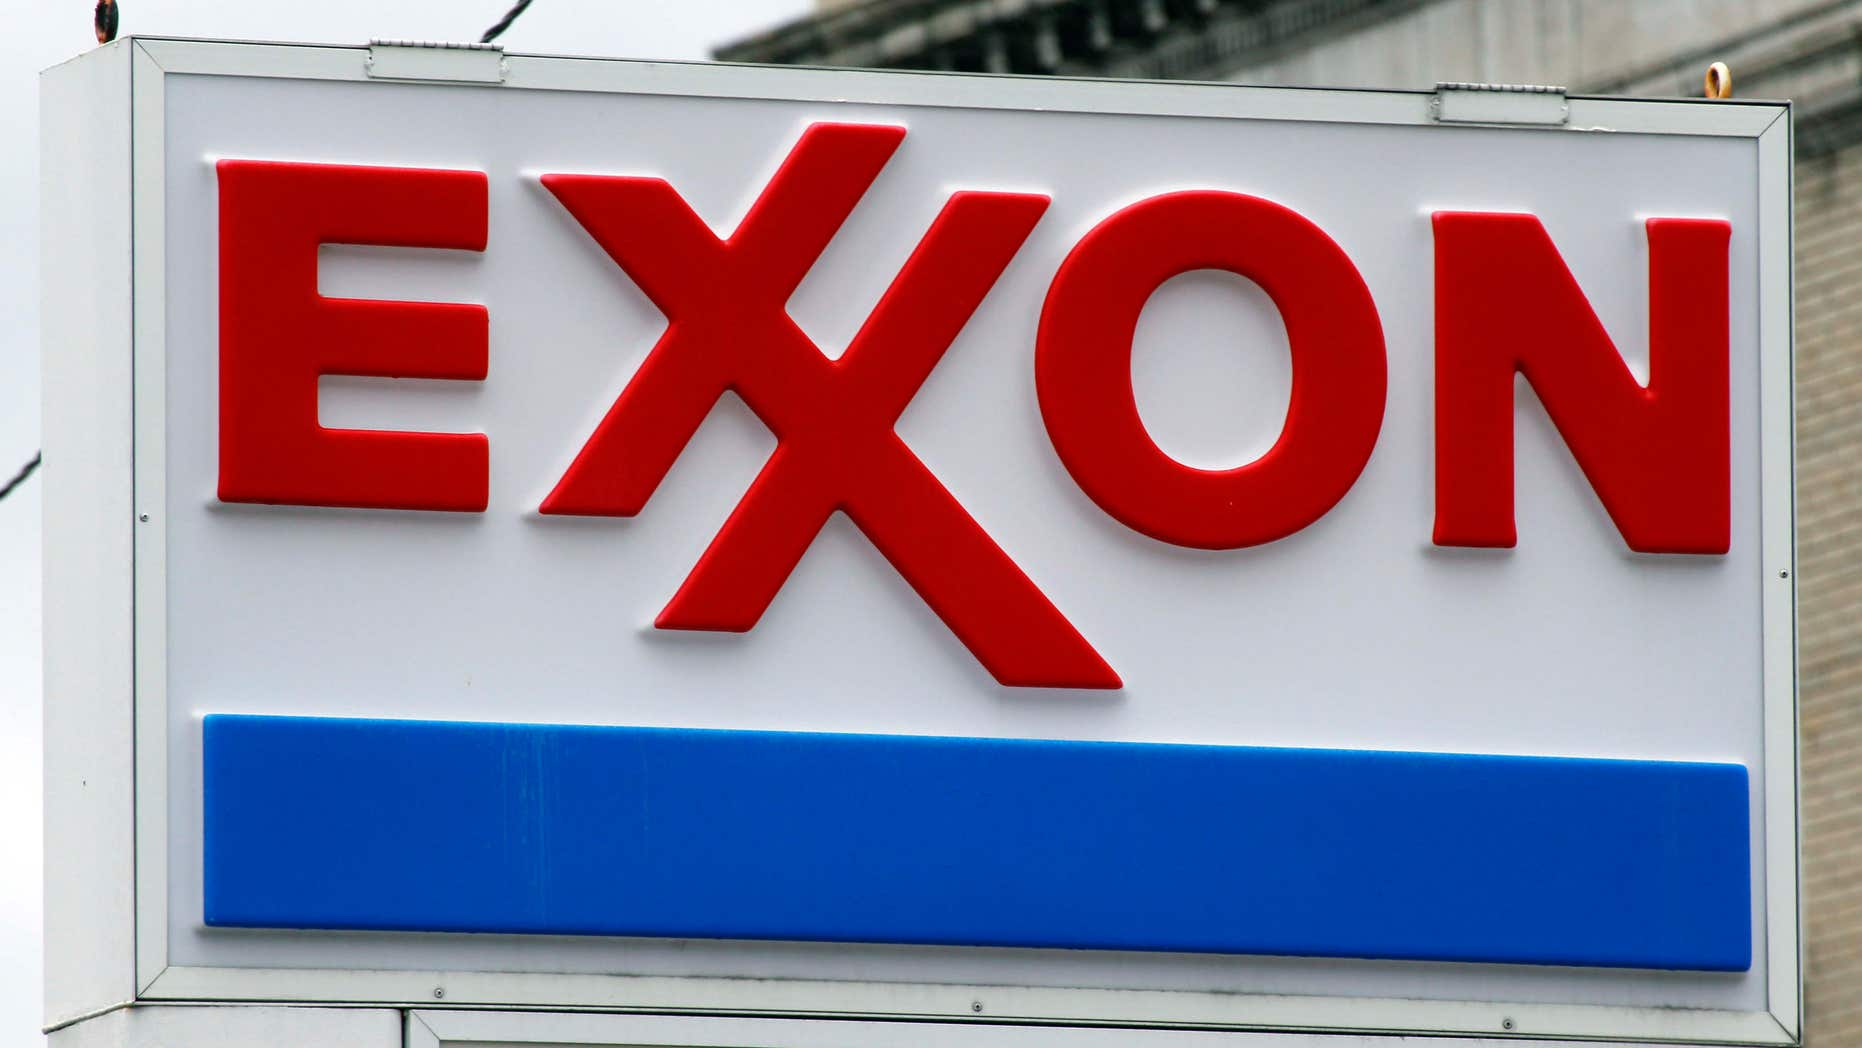 FILE - This April 29, 2014, file photo shows an Exxon sign at a mini-mart in Dormont, Pa.